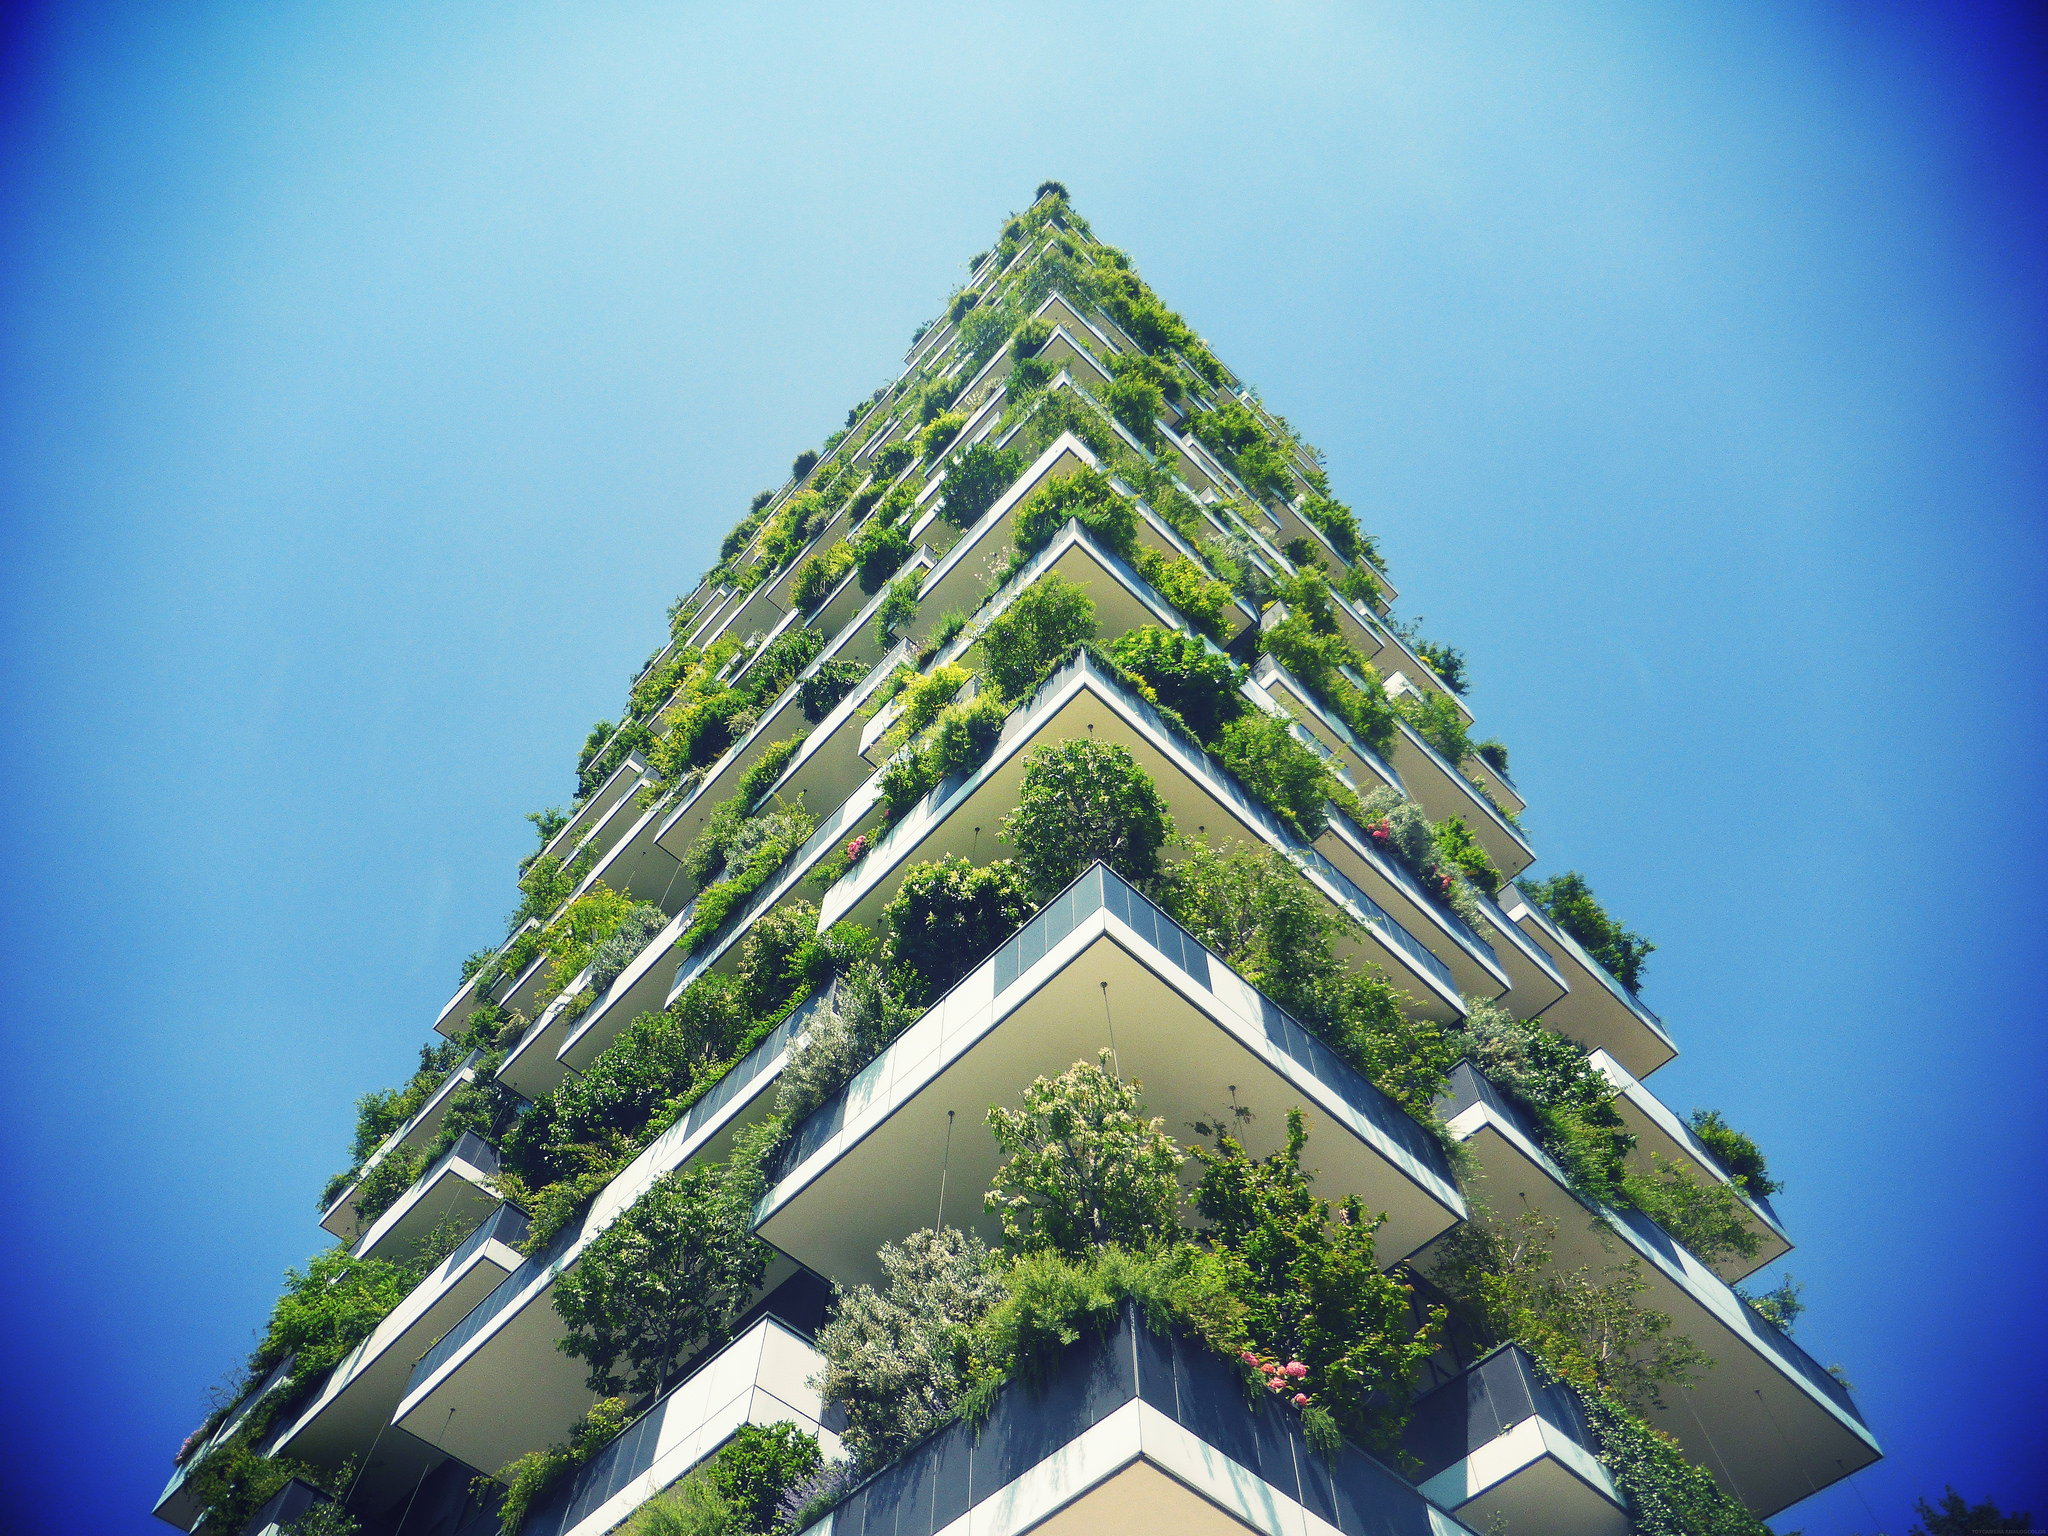 Bosco Verticale building in Milan